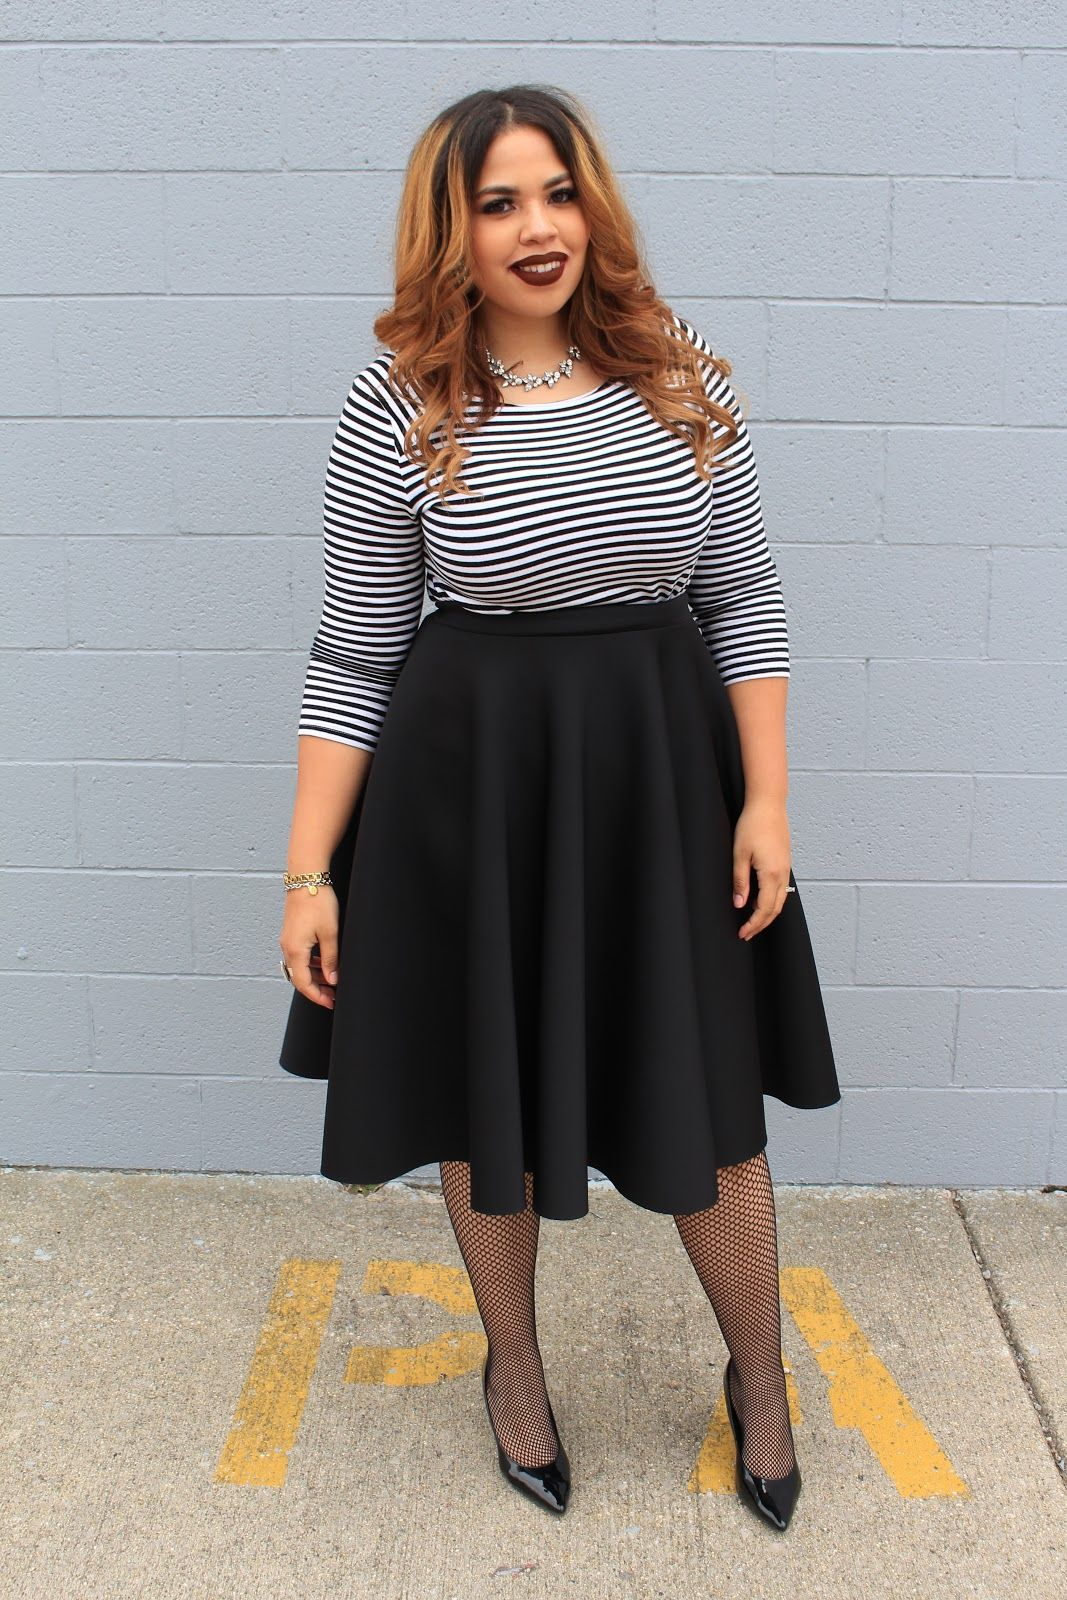 Plus size fashion blogger telly loves fashion wearing fashion to